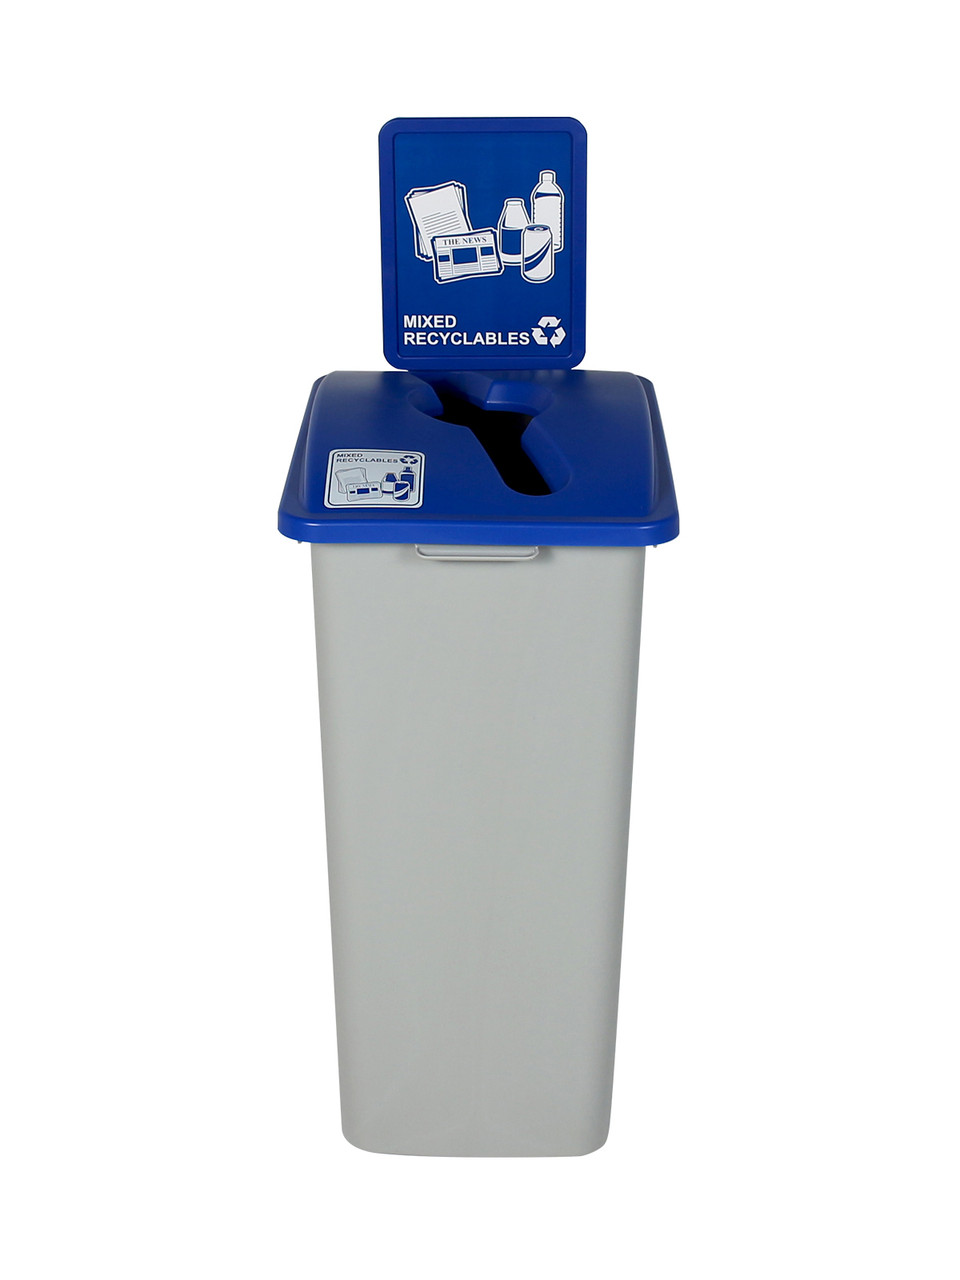 32 Gallon XL Recycling Bin with Sign (Mixed Recyclables)